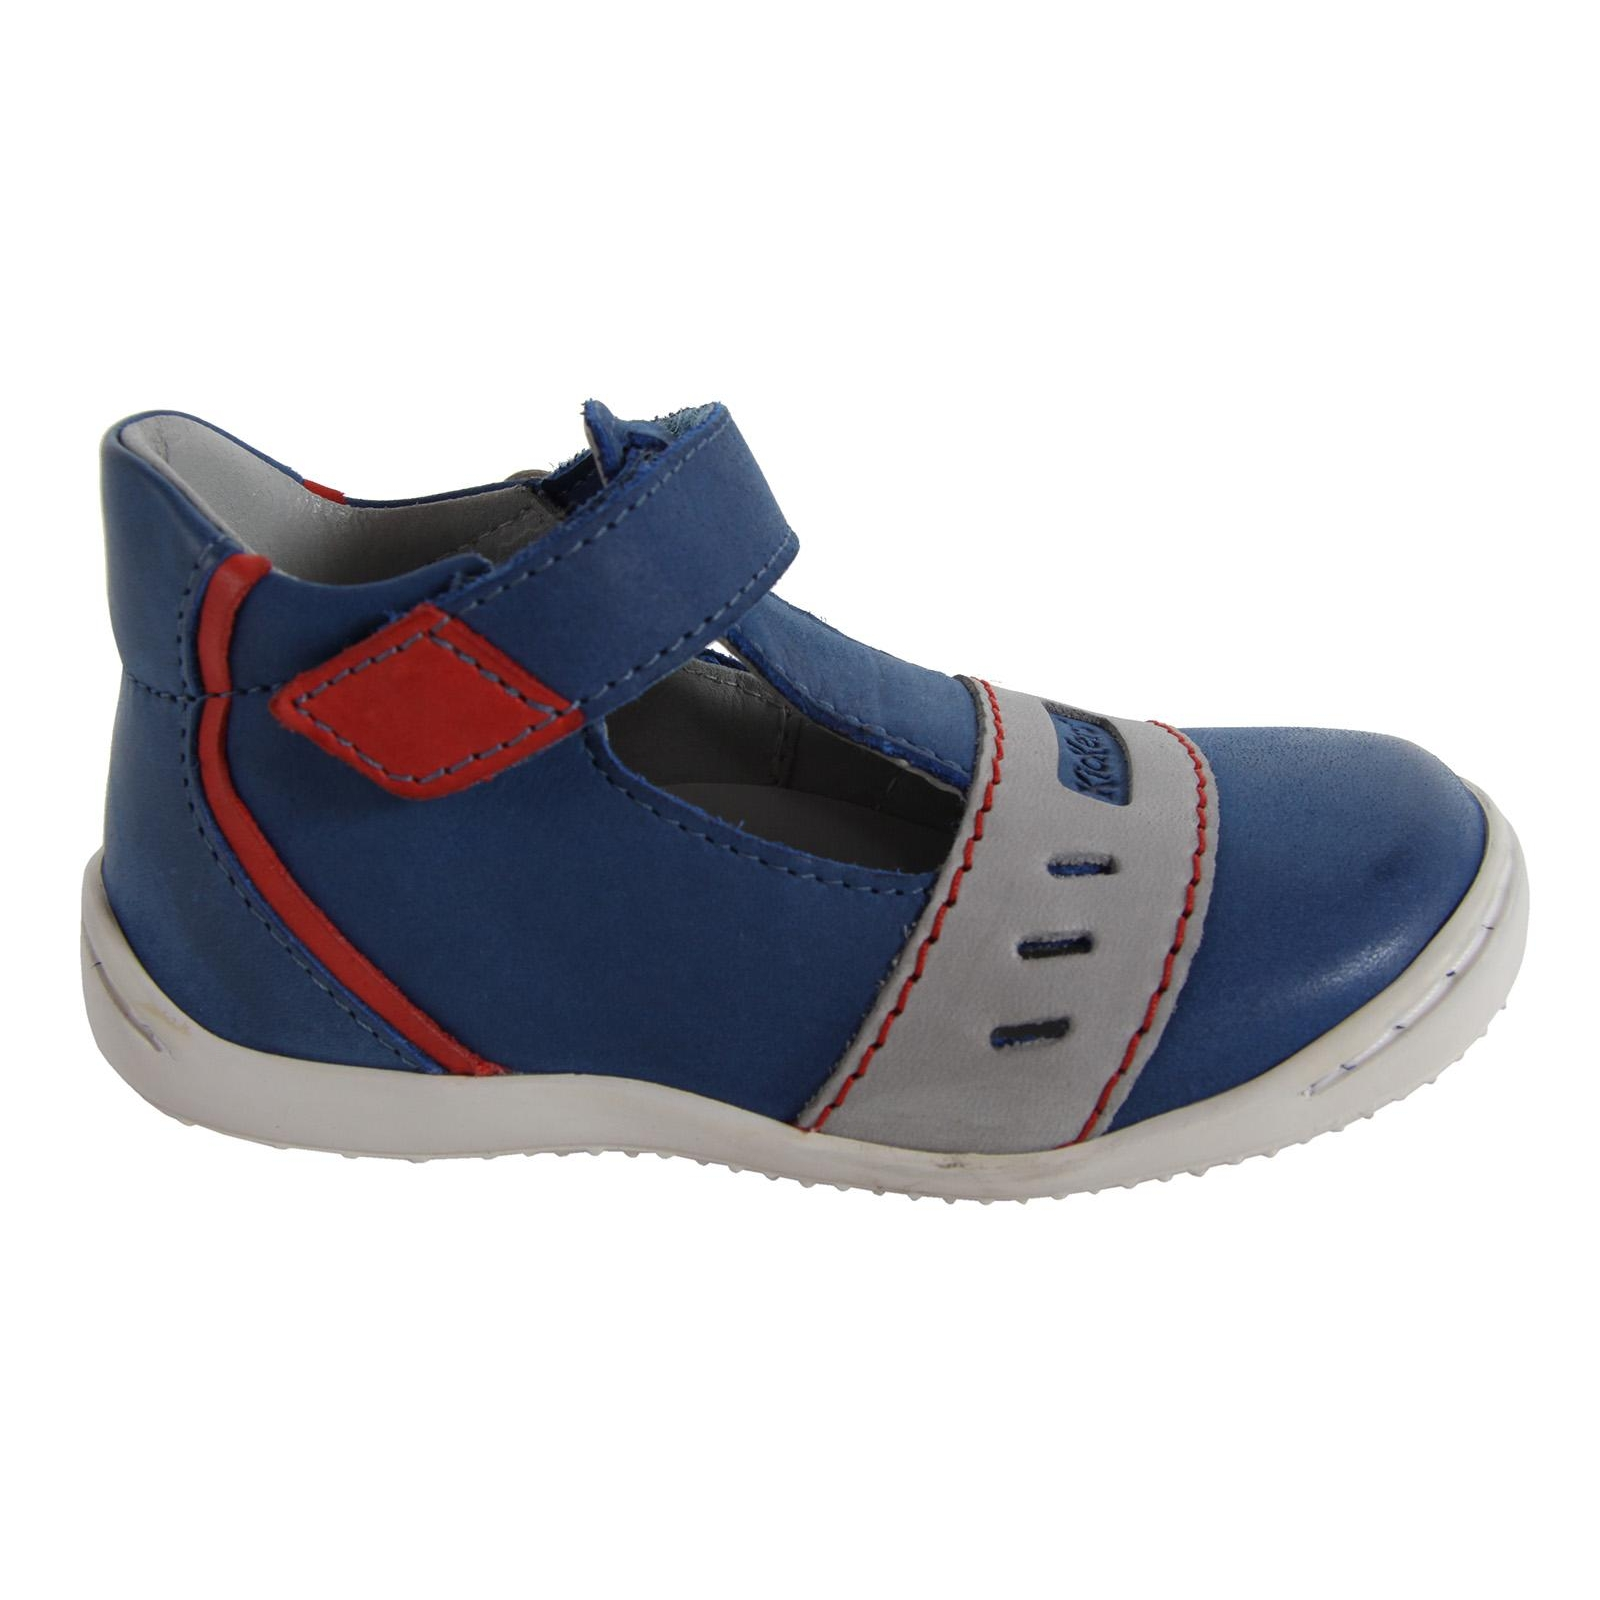 Zapatos de Niño KICKERS 413491-10 GREG BLEU ROUGE